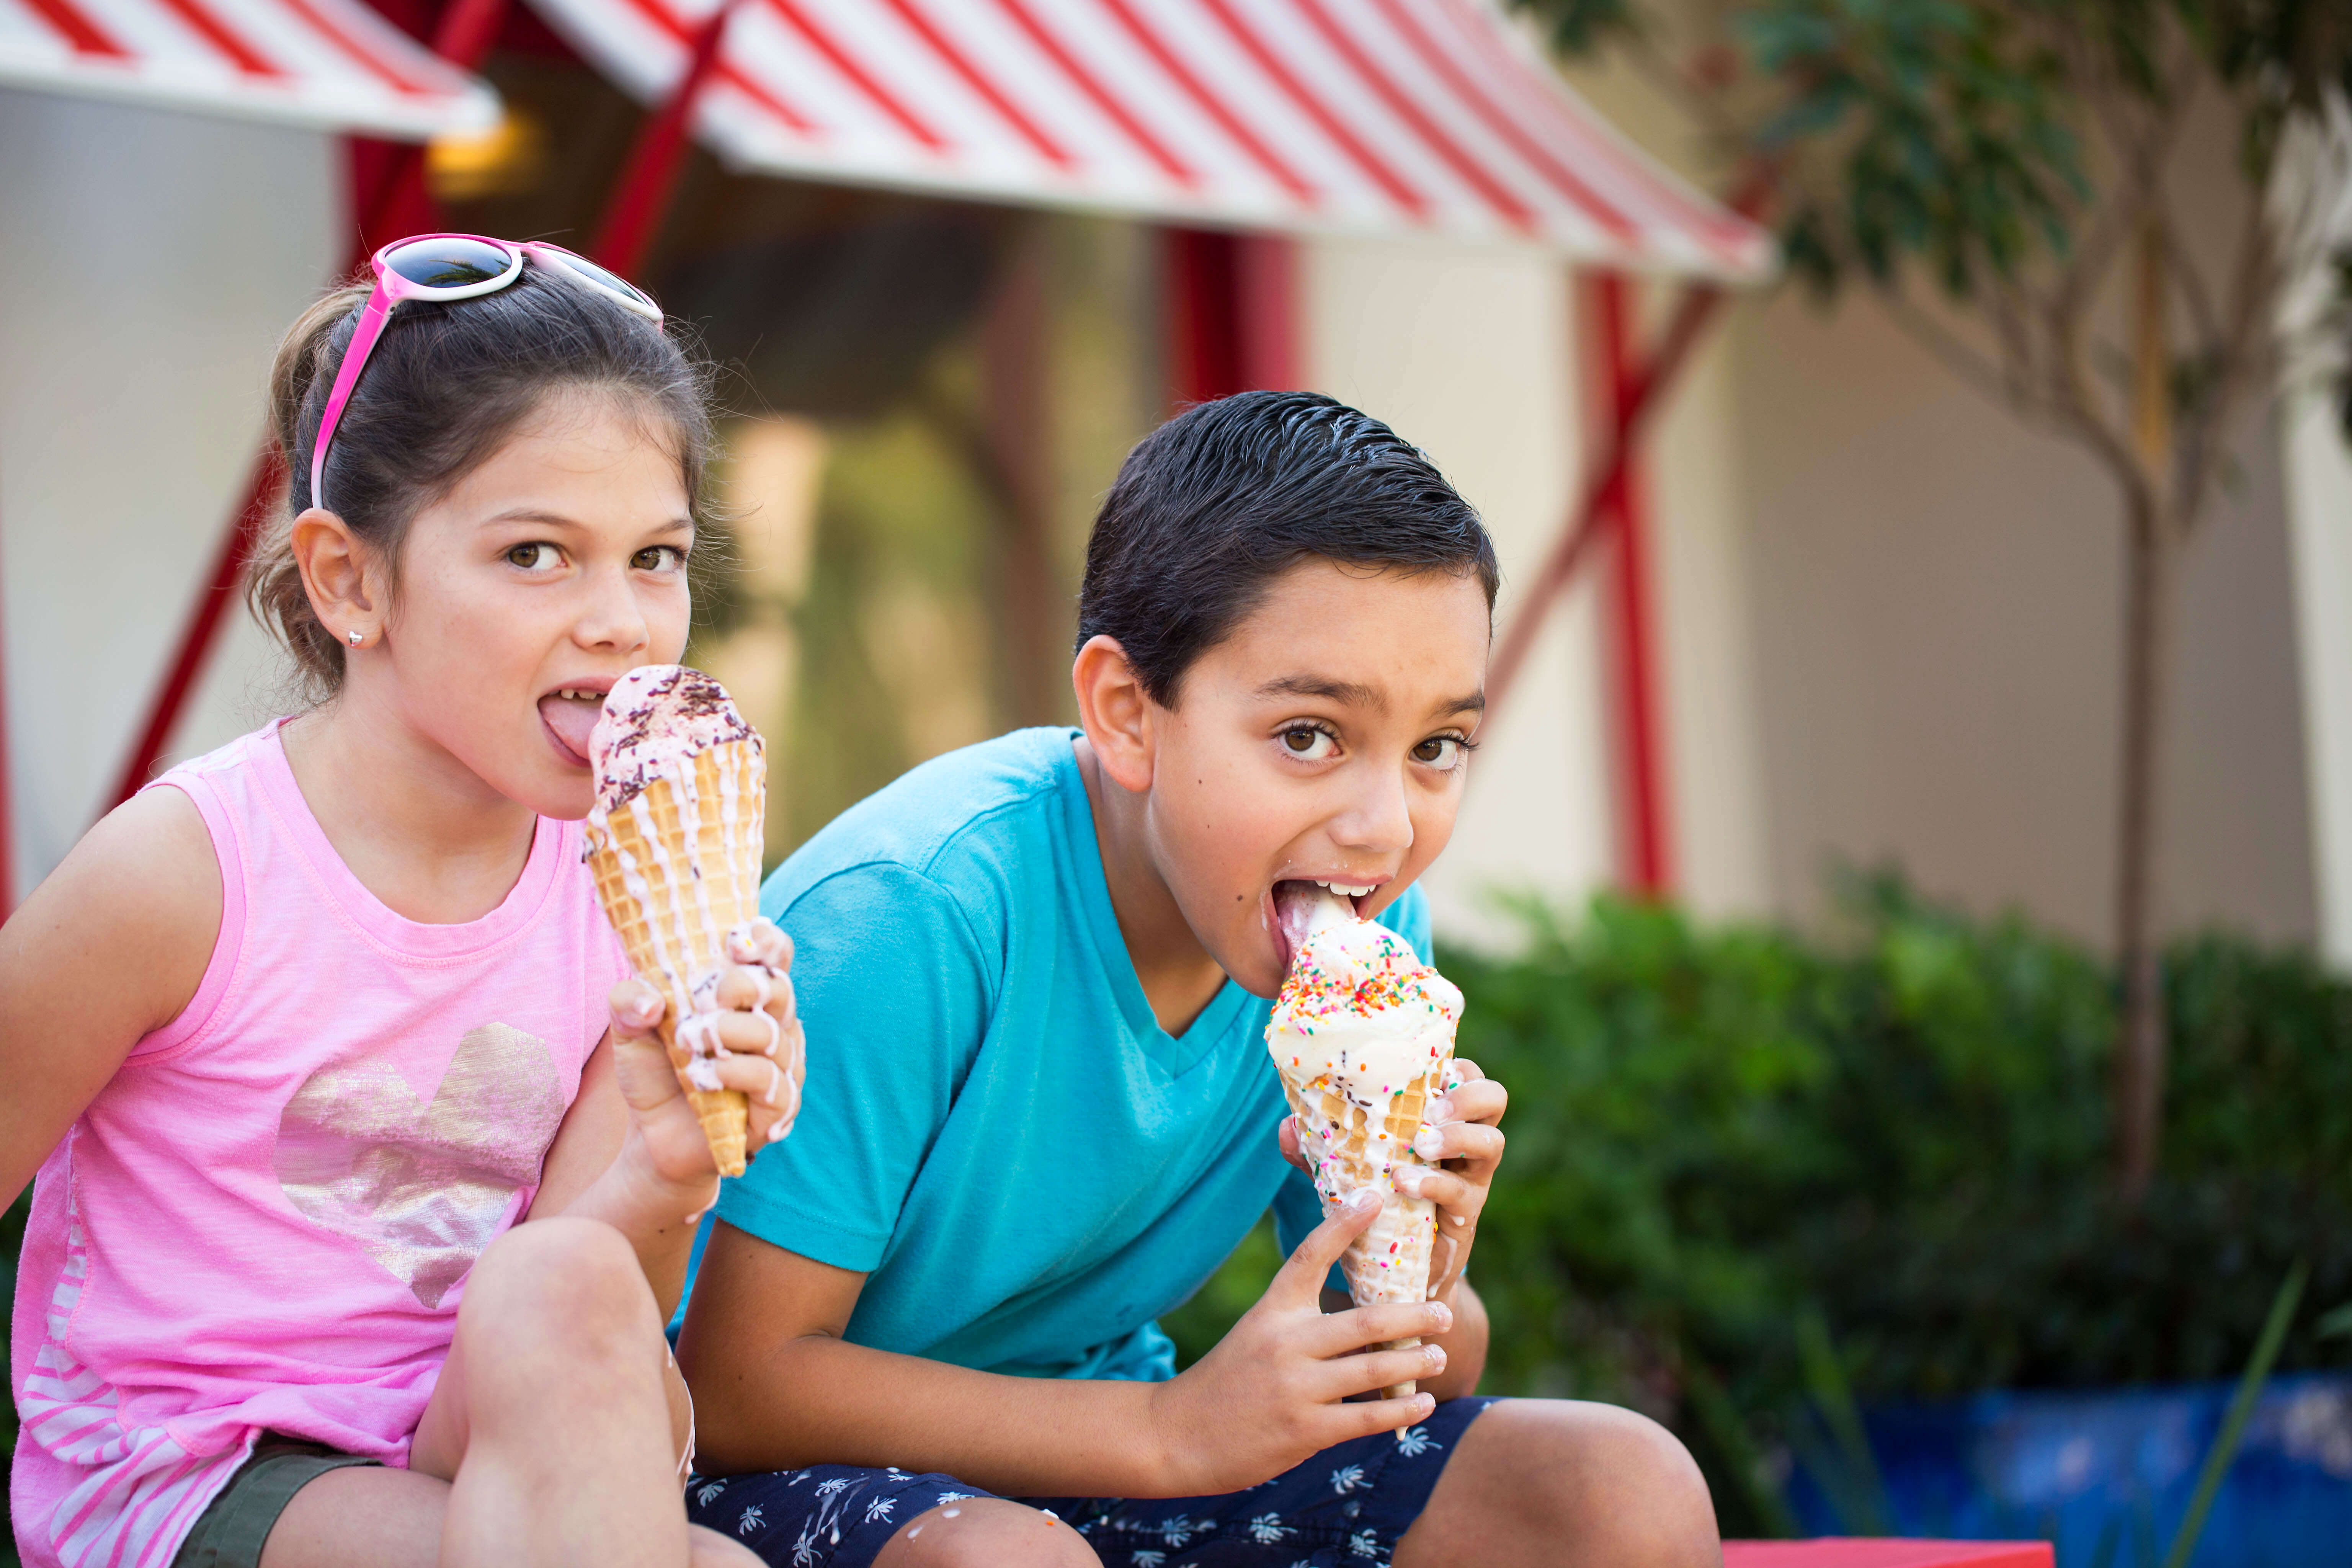 Two kids outside eating ice cream.